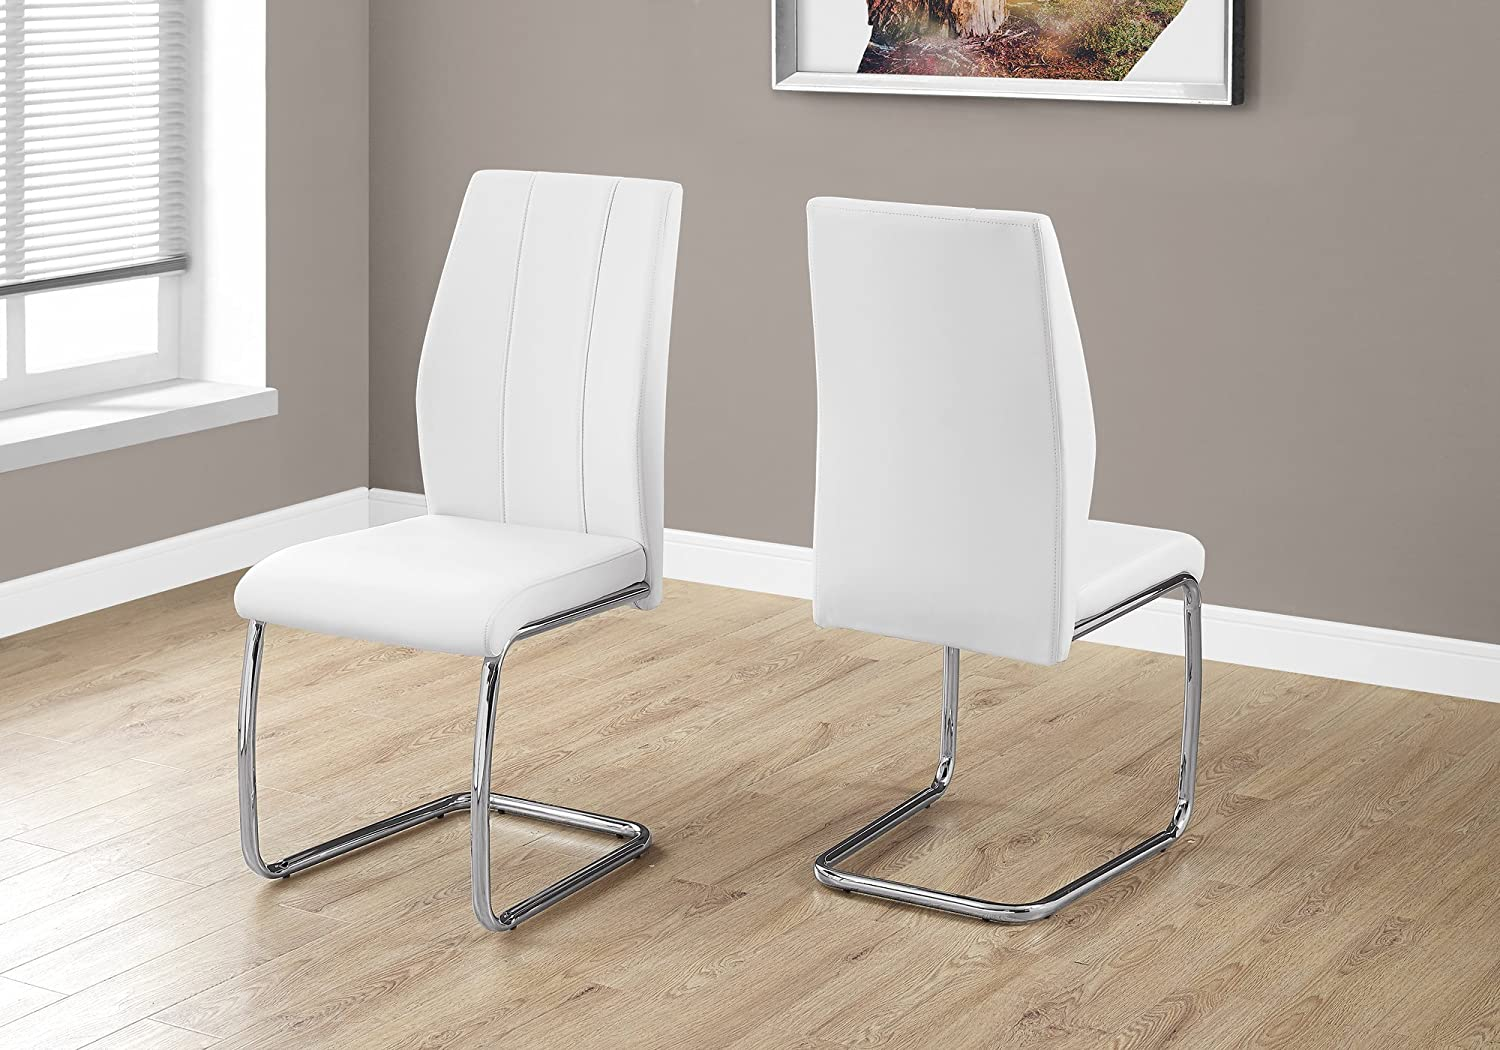 Magnificent Monarch Specialties 1075 2 Piece Dining Chair 2Pcs 39 Leather Look Chrome 17 25 L X 20 25 D X 38 75 H White Camellatalisay Diy Chair Ideas Camellatalisaycom